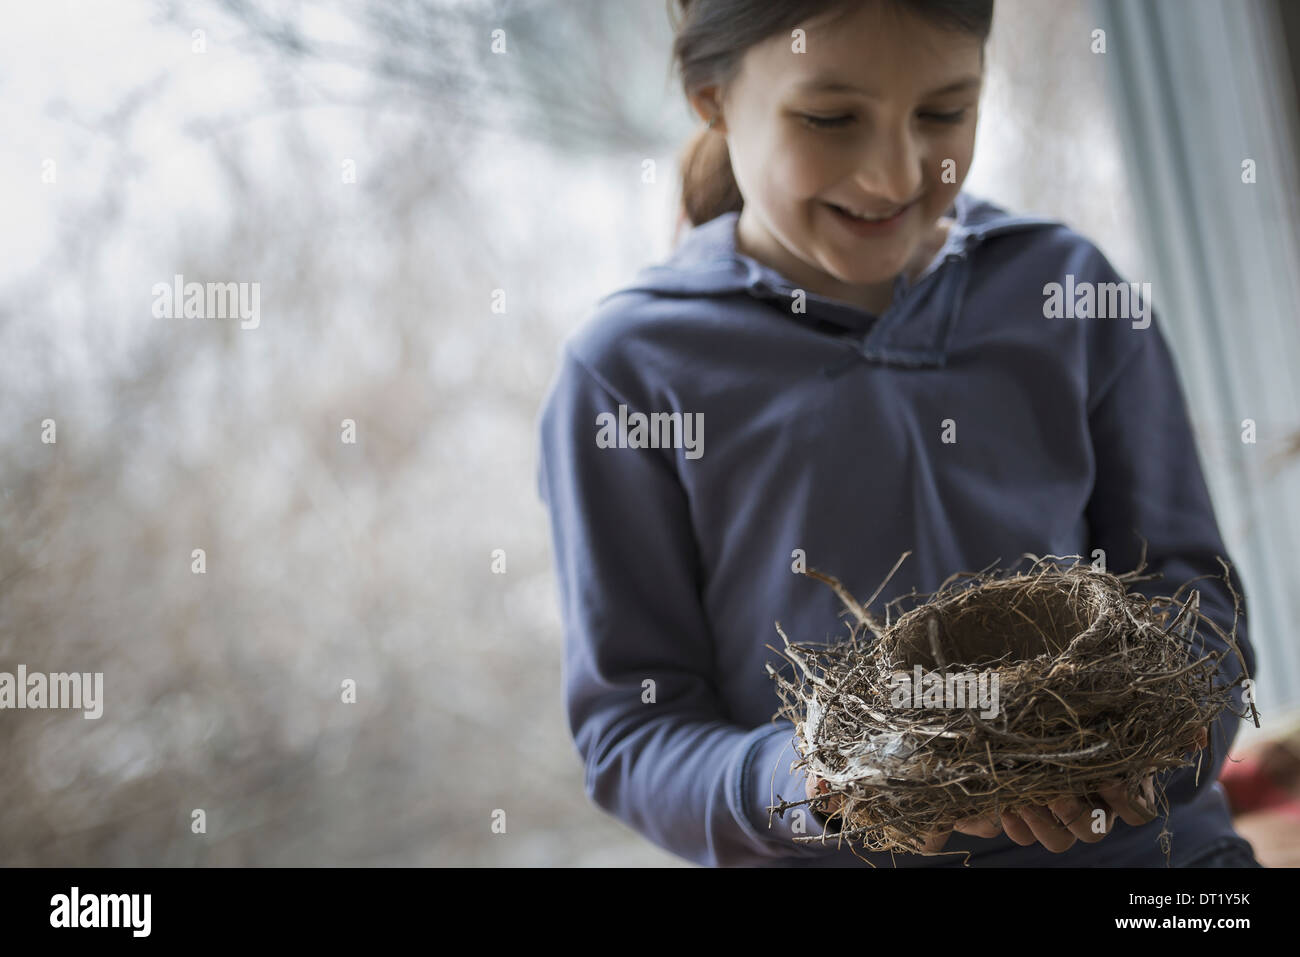 An organic farm in winter in New York State USA A young girl holding a bird's nest woven from twigs and leaves - Stock Image